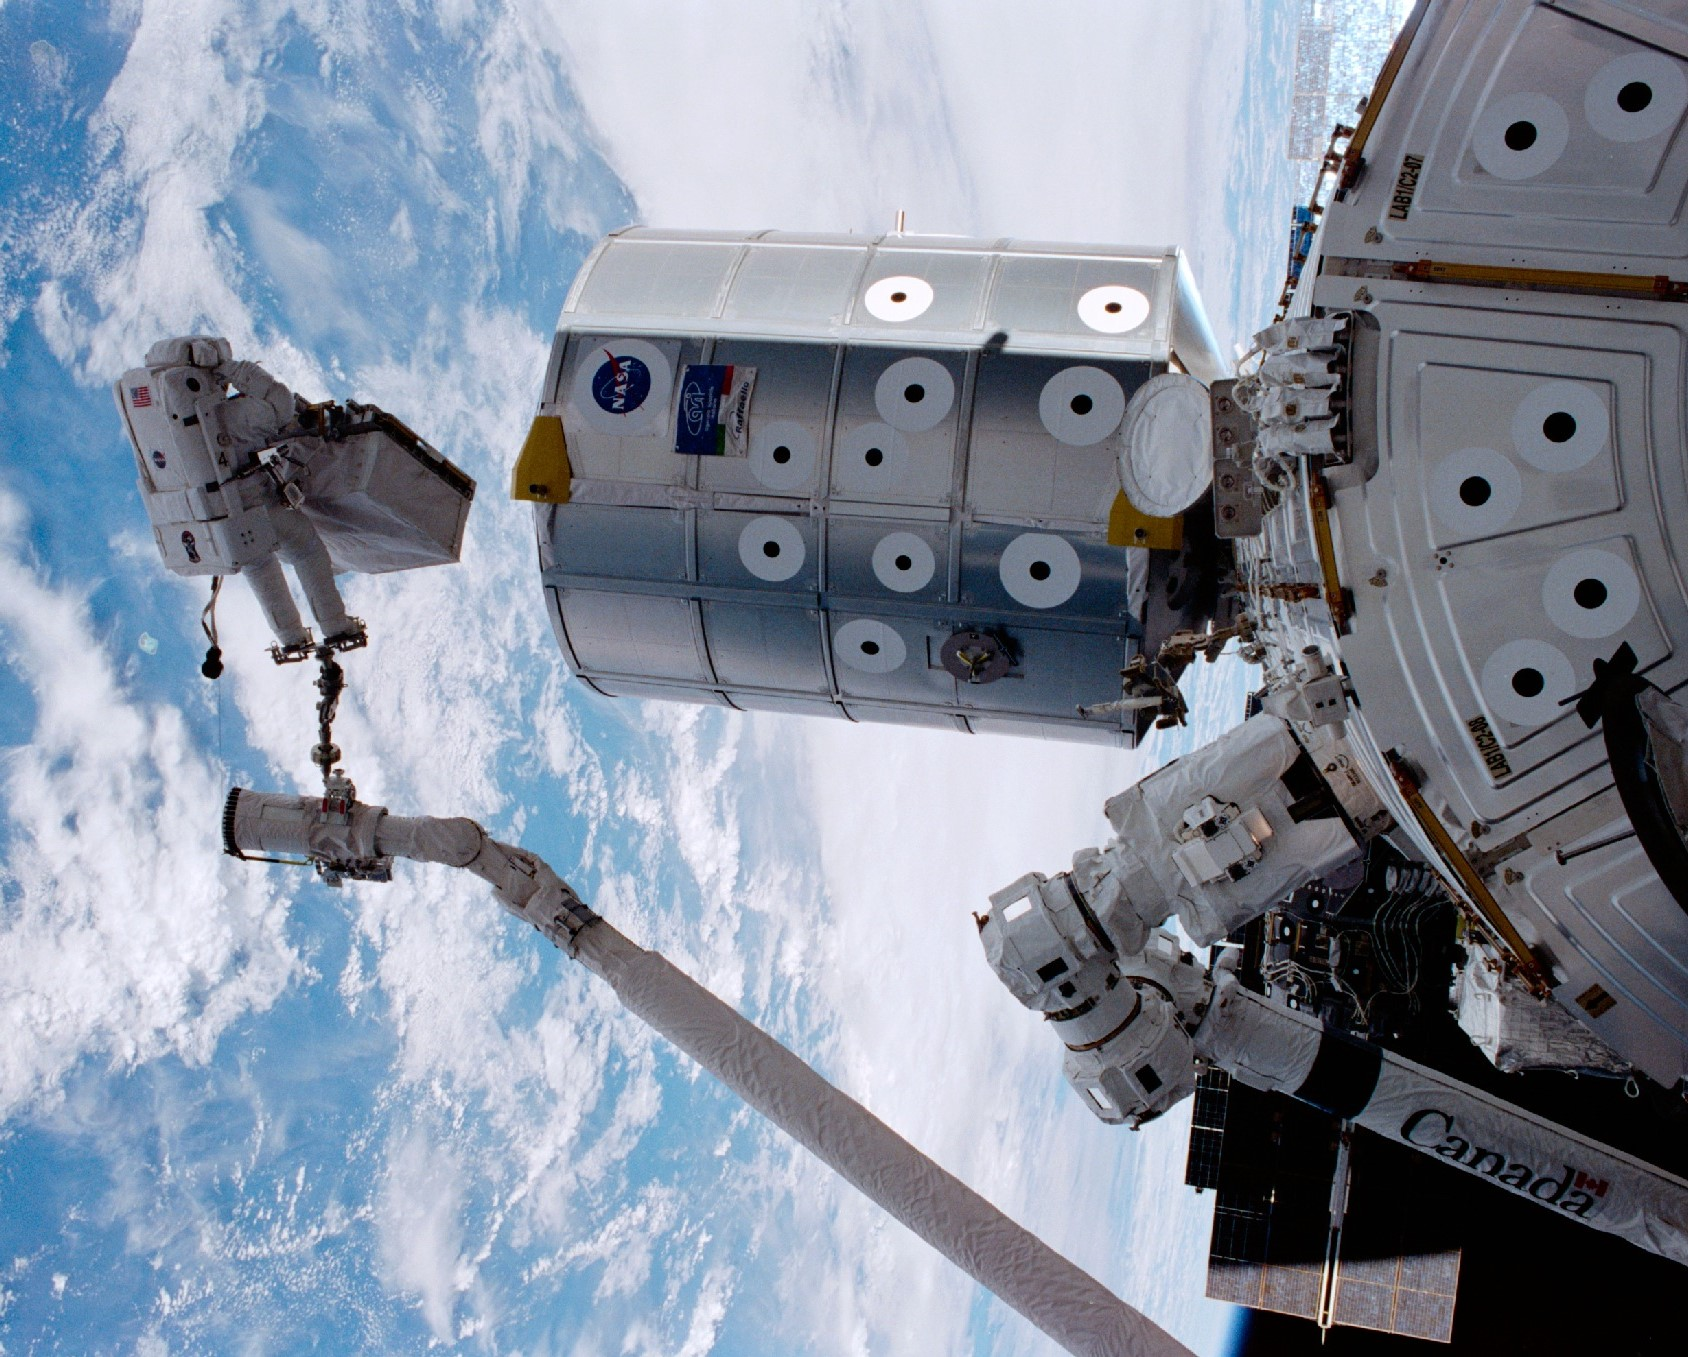 STS-100 Brings Canadian Robotic Arm to the House Station